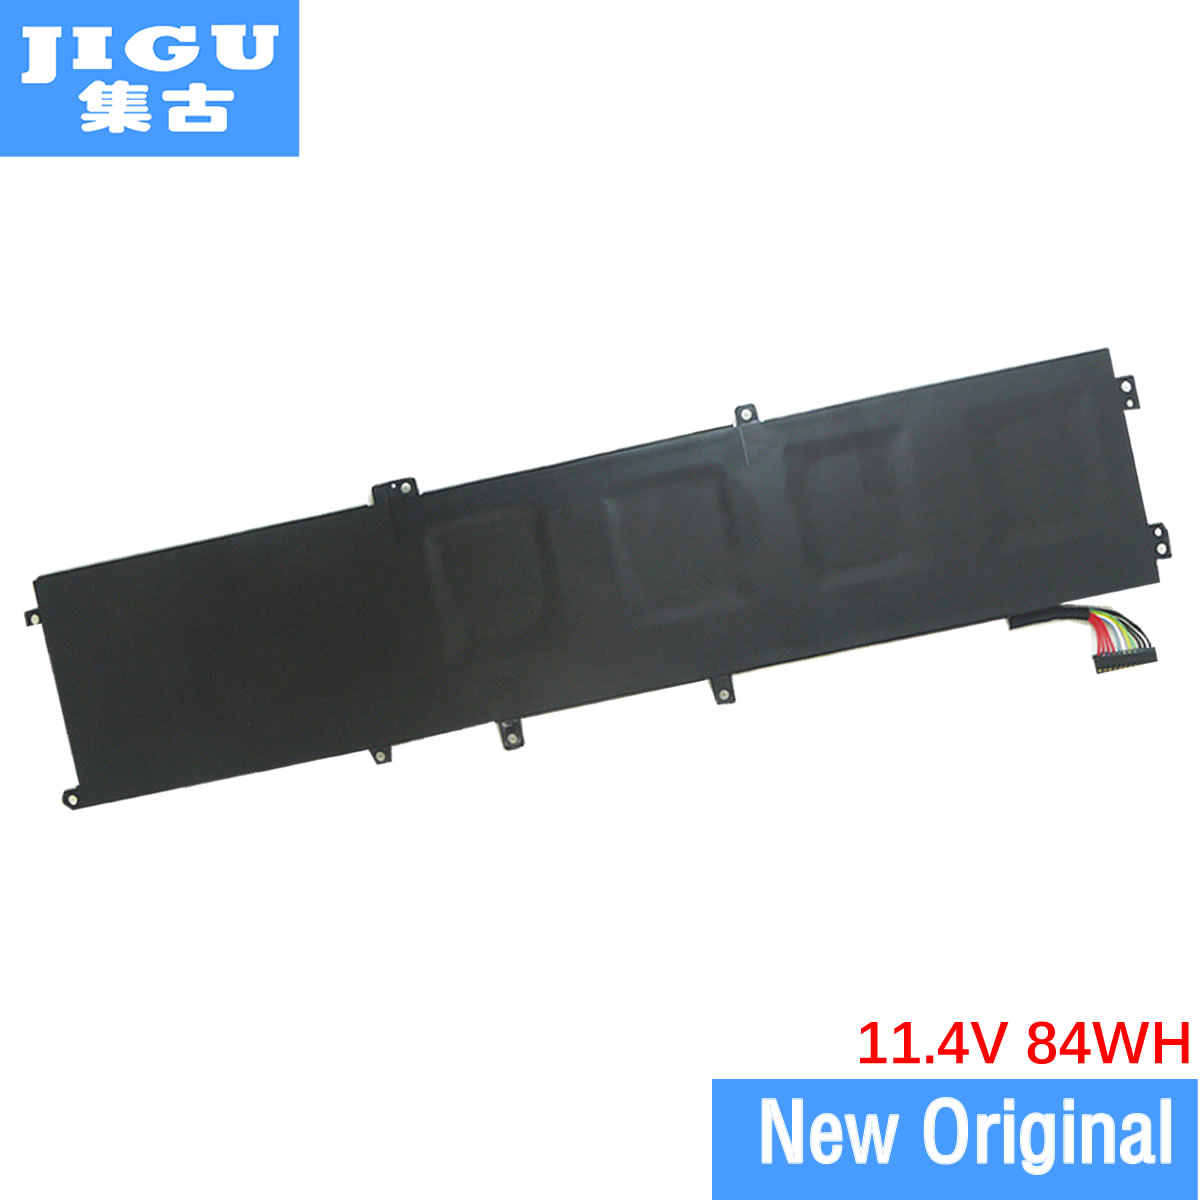 JIGU 11.4V 84WH original laptop Battery 1P6KD 4GVGH RRCGW for DELL for Precision 5510 XPS 15 9550 XPS15 9550 11 4v 84wh new original laptop battery for dell xps 15 9550 d1828t 1p6kd t453x 4gvgh precision 5510 xps15 9550 xps 15